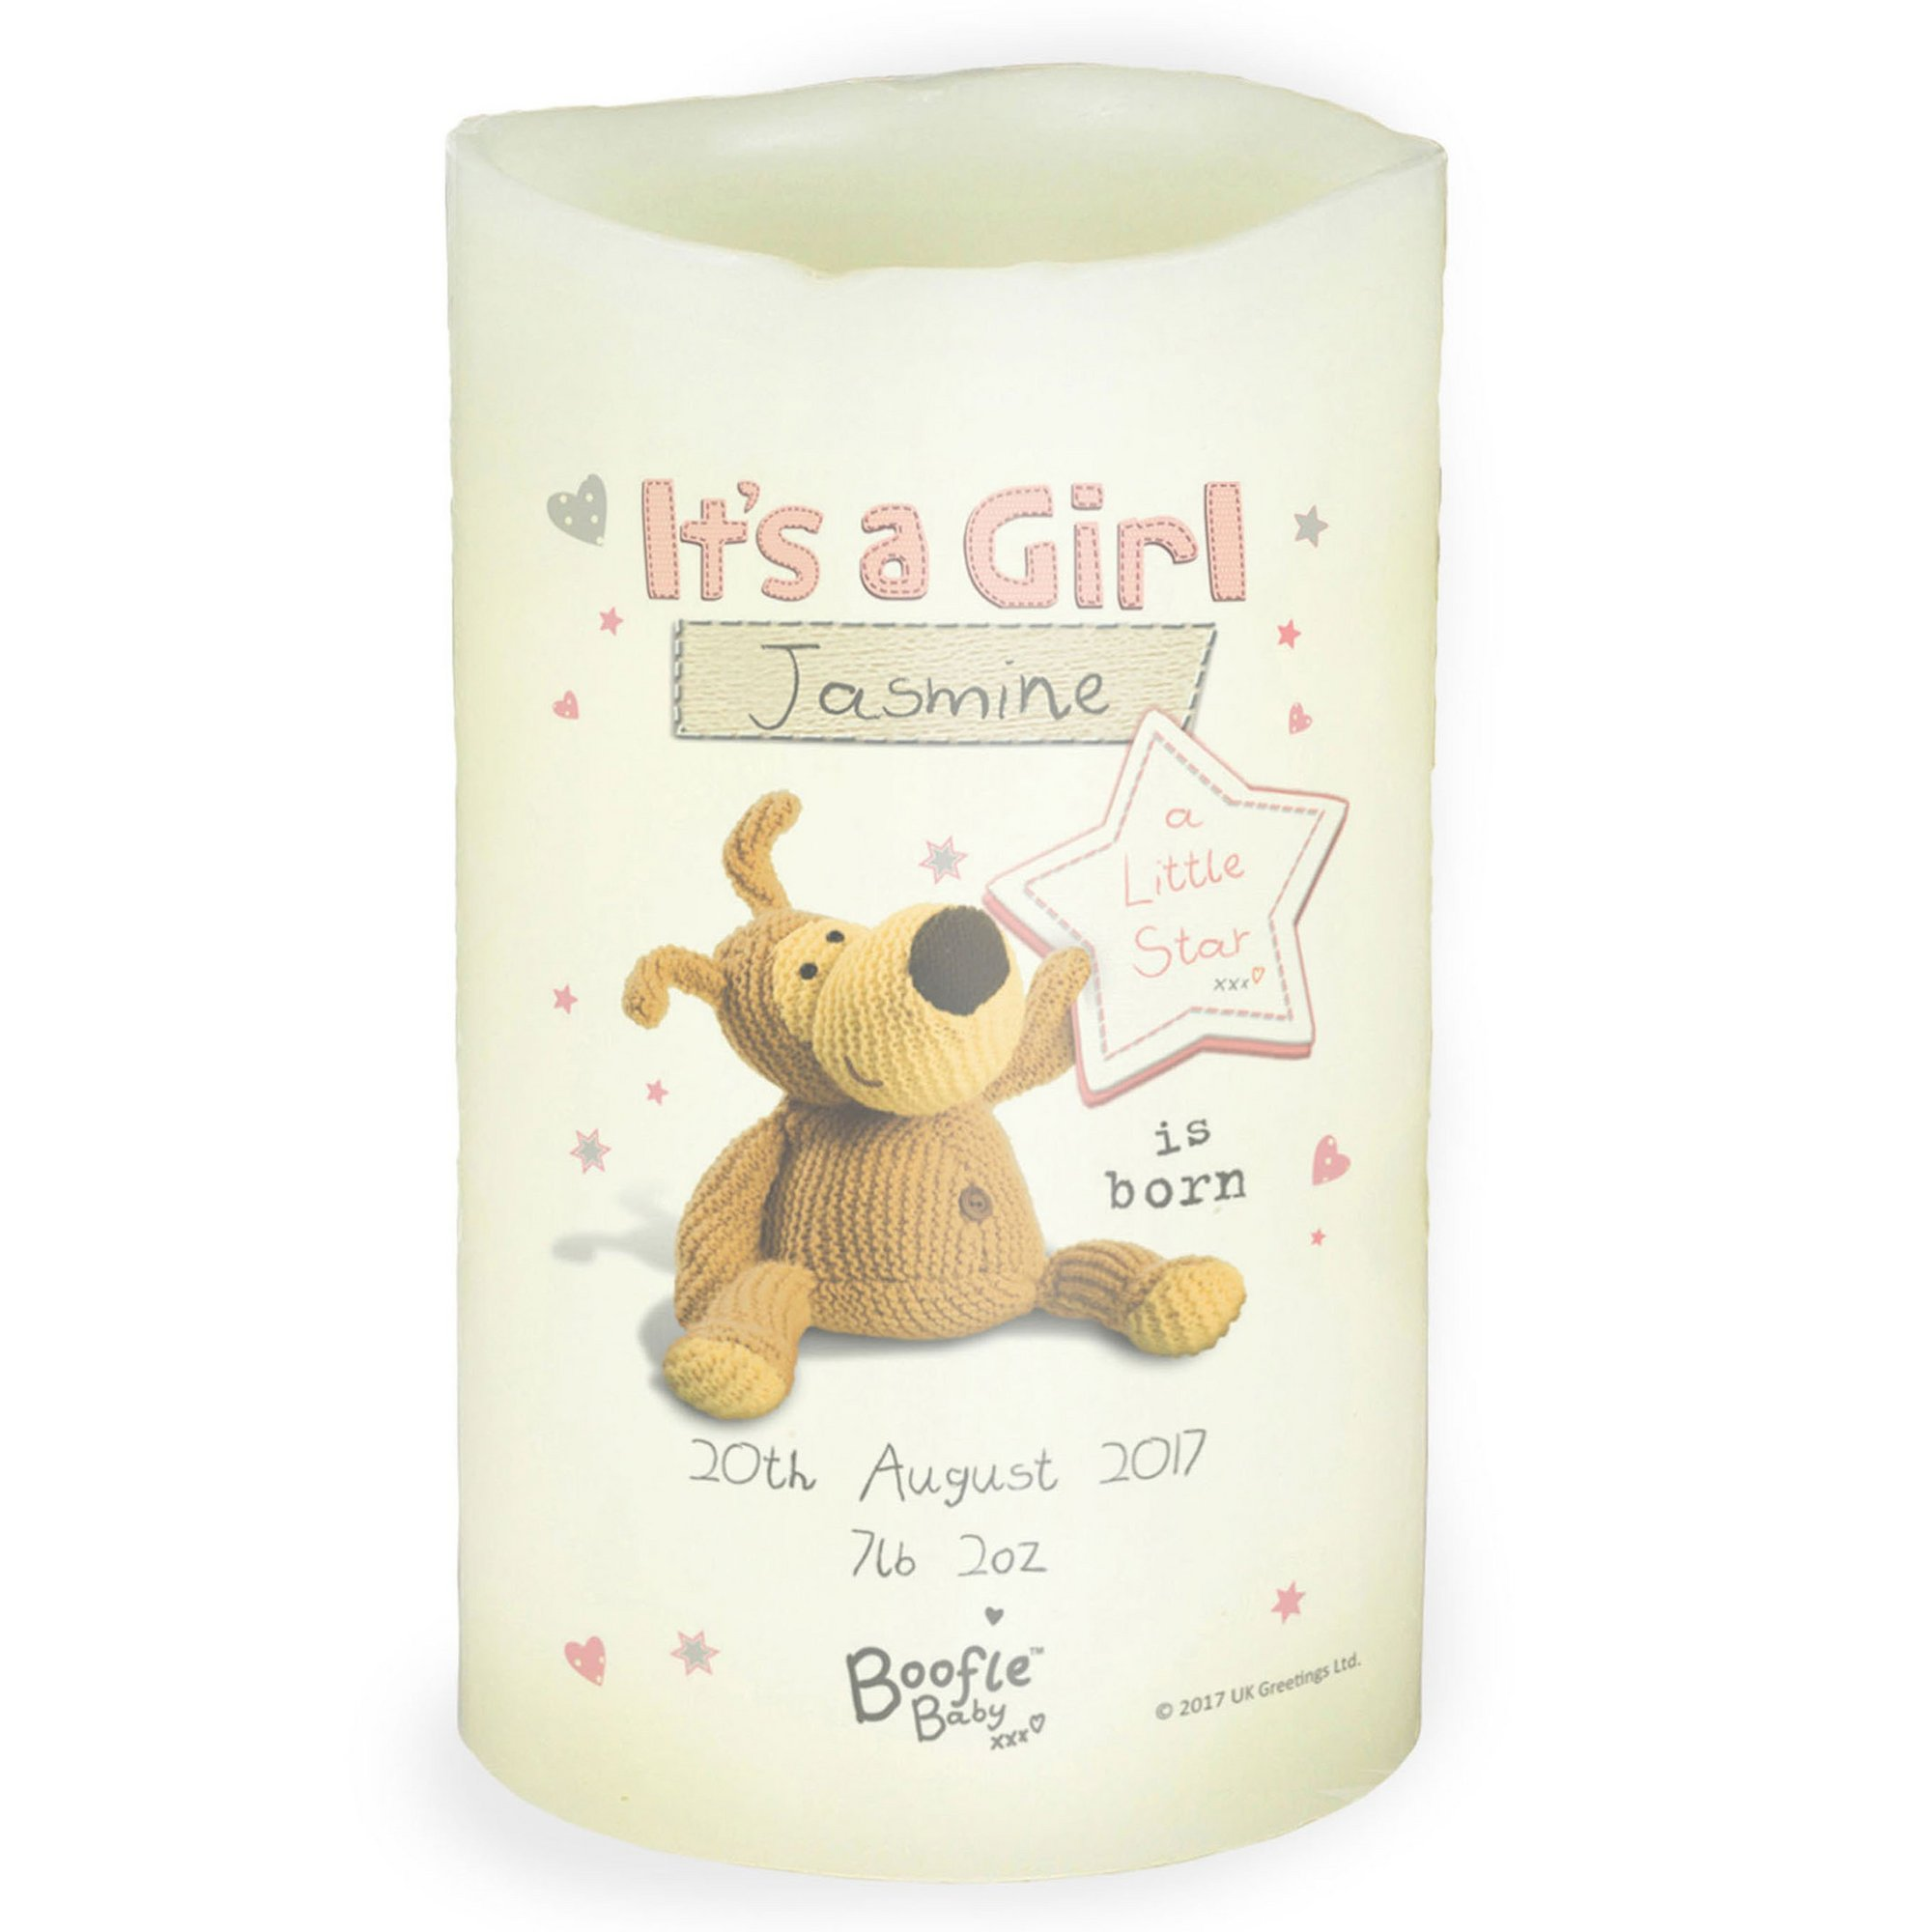 Image of Personalised Boofle Its a Girl Nightlight Candle